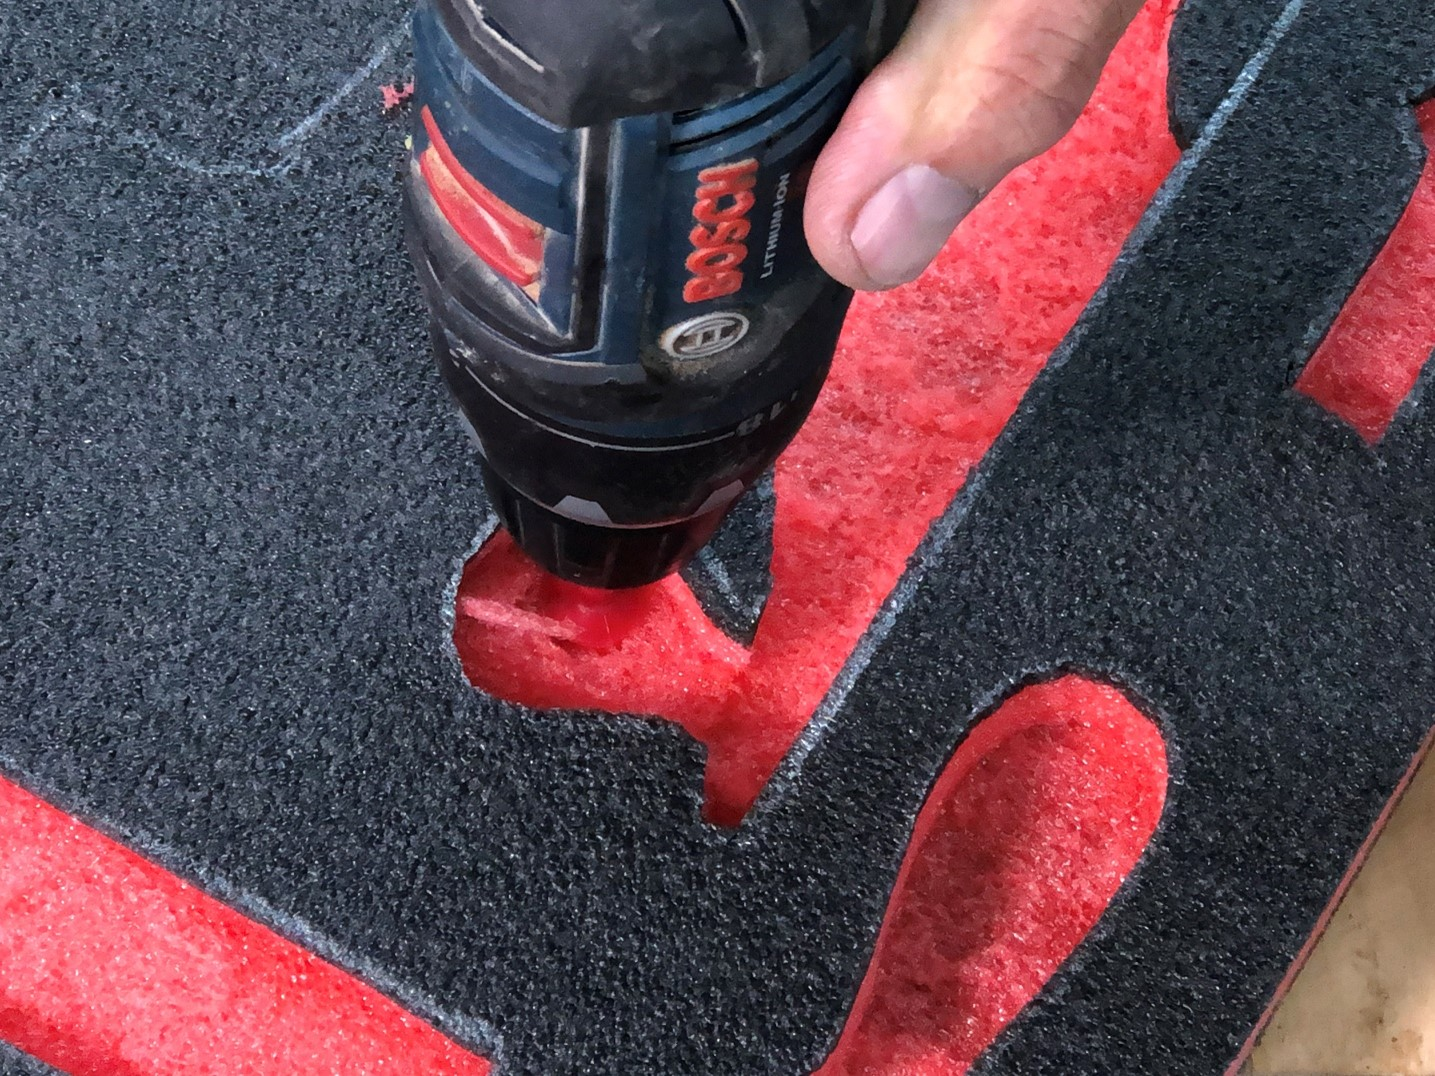 Using the kaizen foam spinners in a drill